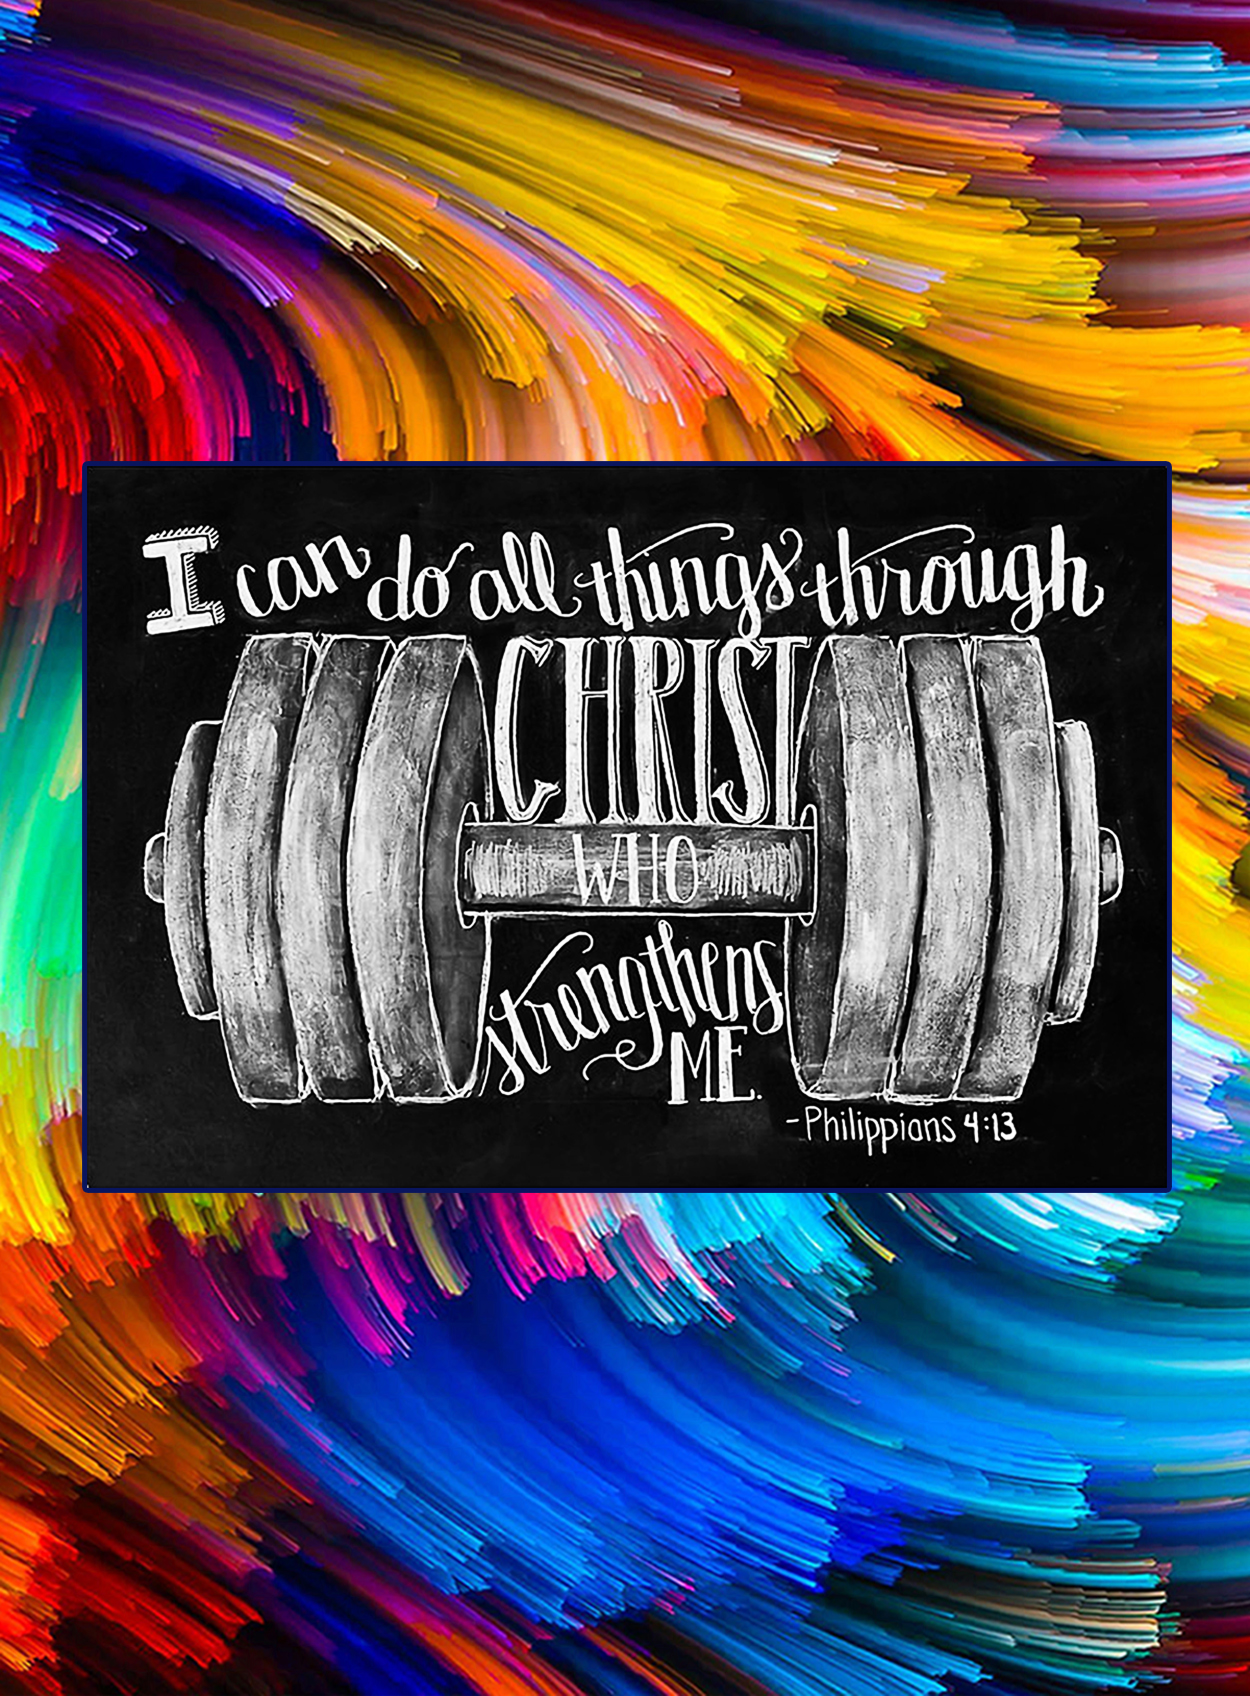 Fitness i can do all things through christ who strengthens me poster - A2